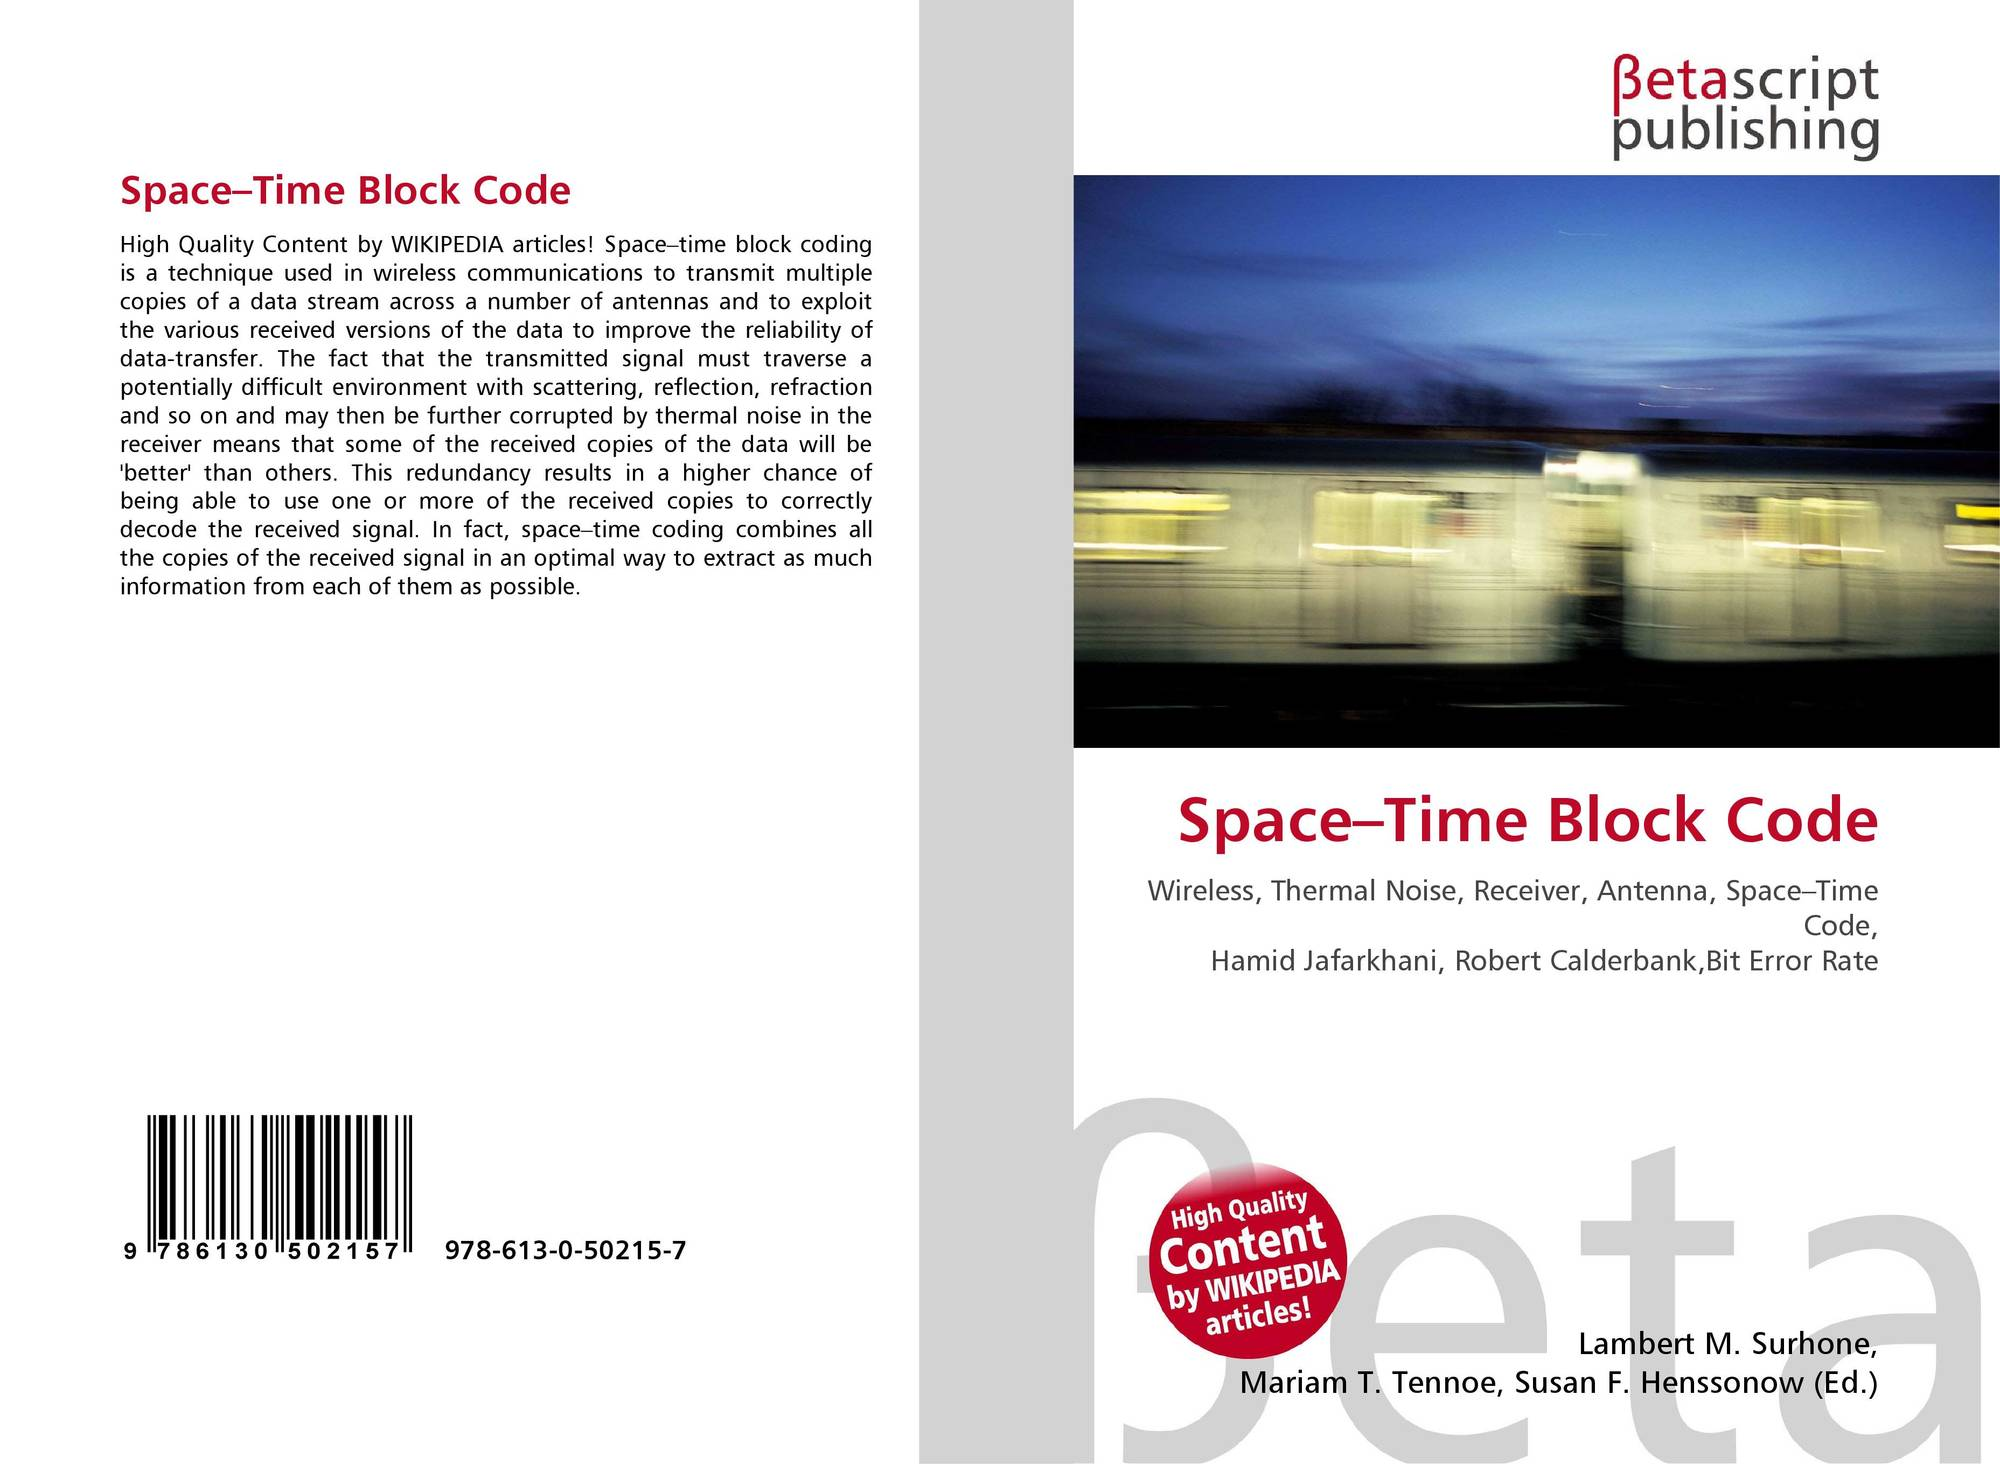 thesis on space-time coding In cdma systems, the narrowband message signal is multiplied by a very large bandwidth signal is a spread sequence as space time block code space'time block coding is a technique used in wireless communications to transmit multiple copies of a data stream across a number of antennas and to exploit the various received versions of the data to.